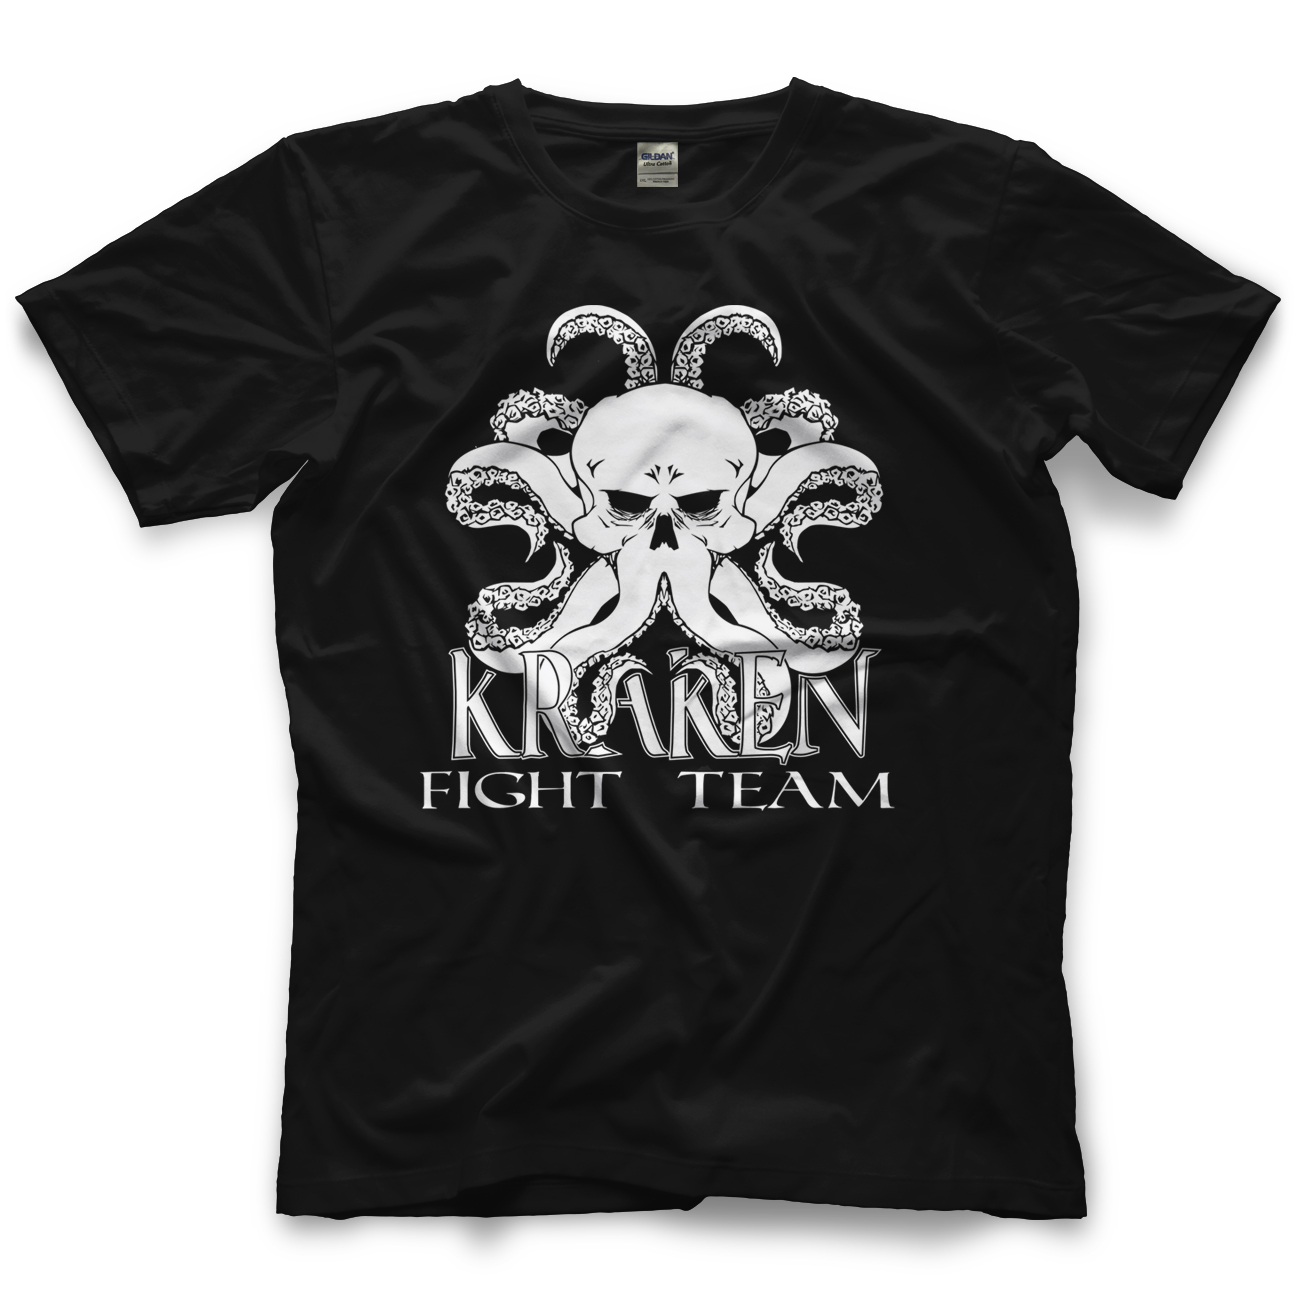 Sean Ross Sapp Kraken Fight Team T-shirt